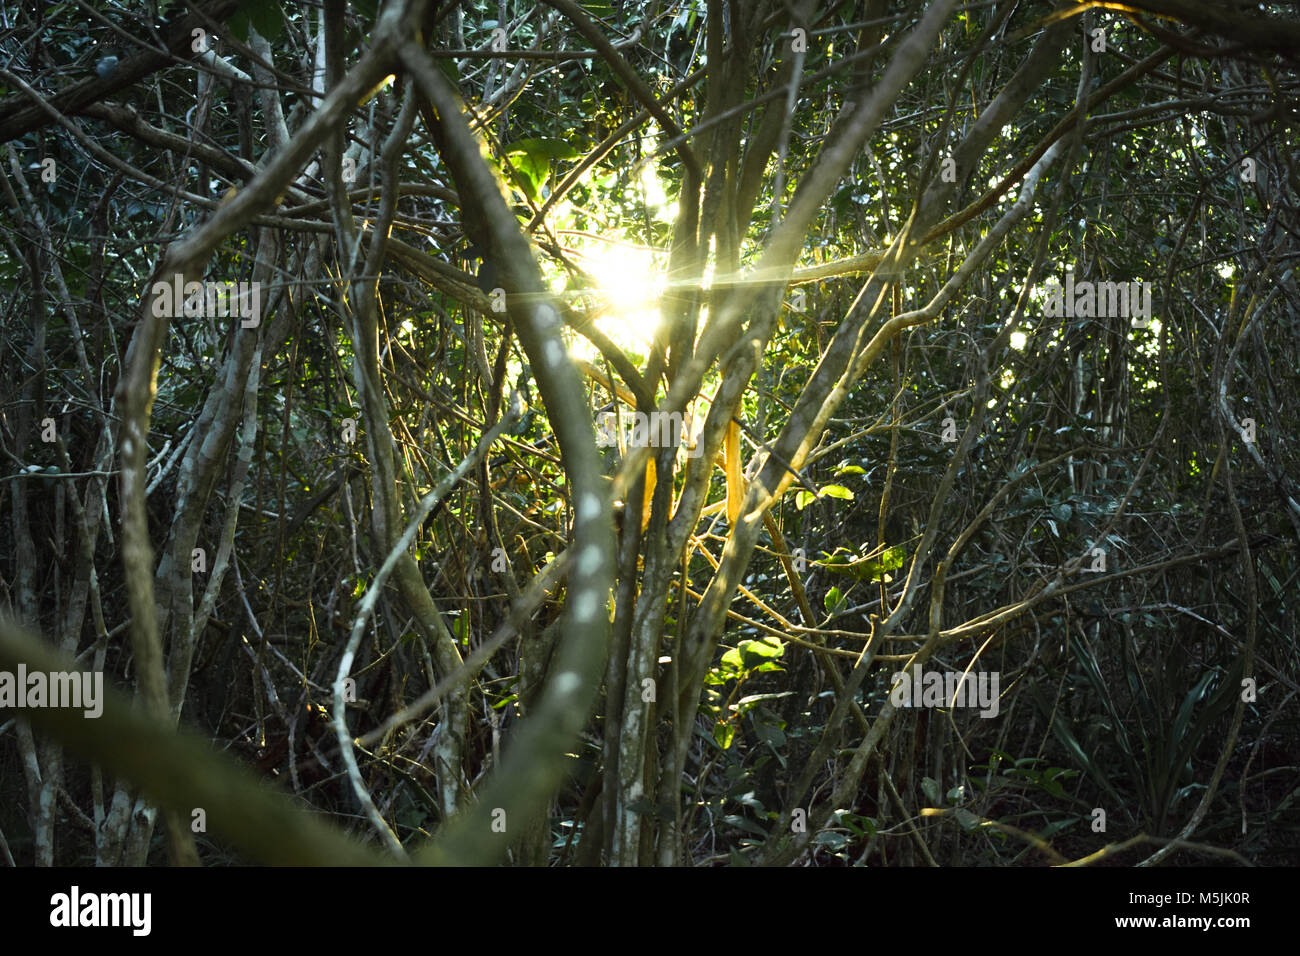 Sunset in the middle of rain forest - Stock Image